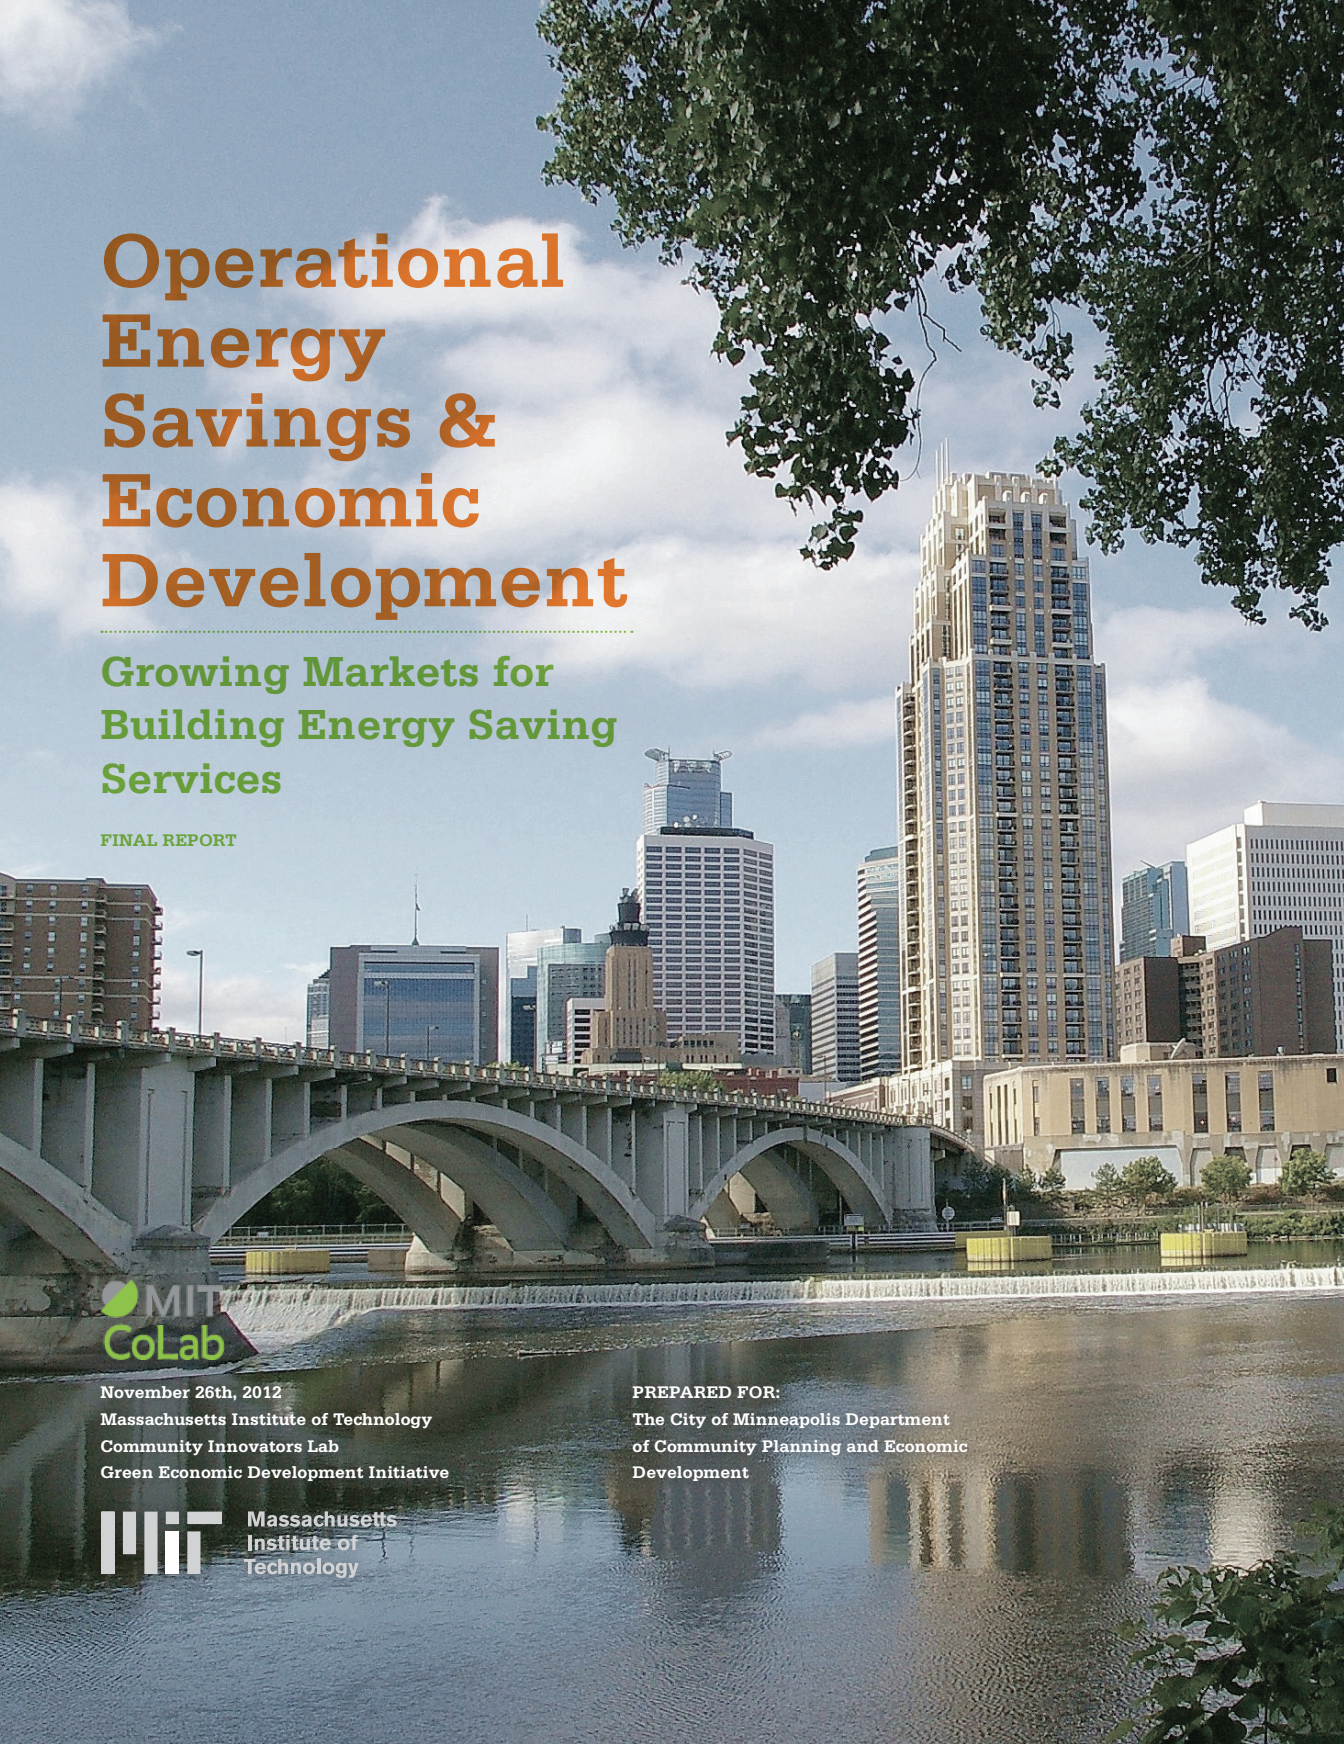 Operational Energy Savings and Economic Development - Growing Markets for Building Energy Saving Services.png